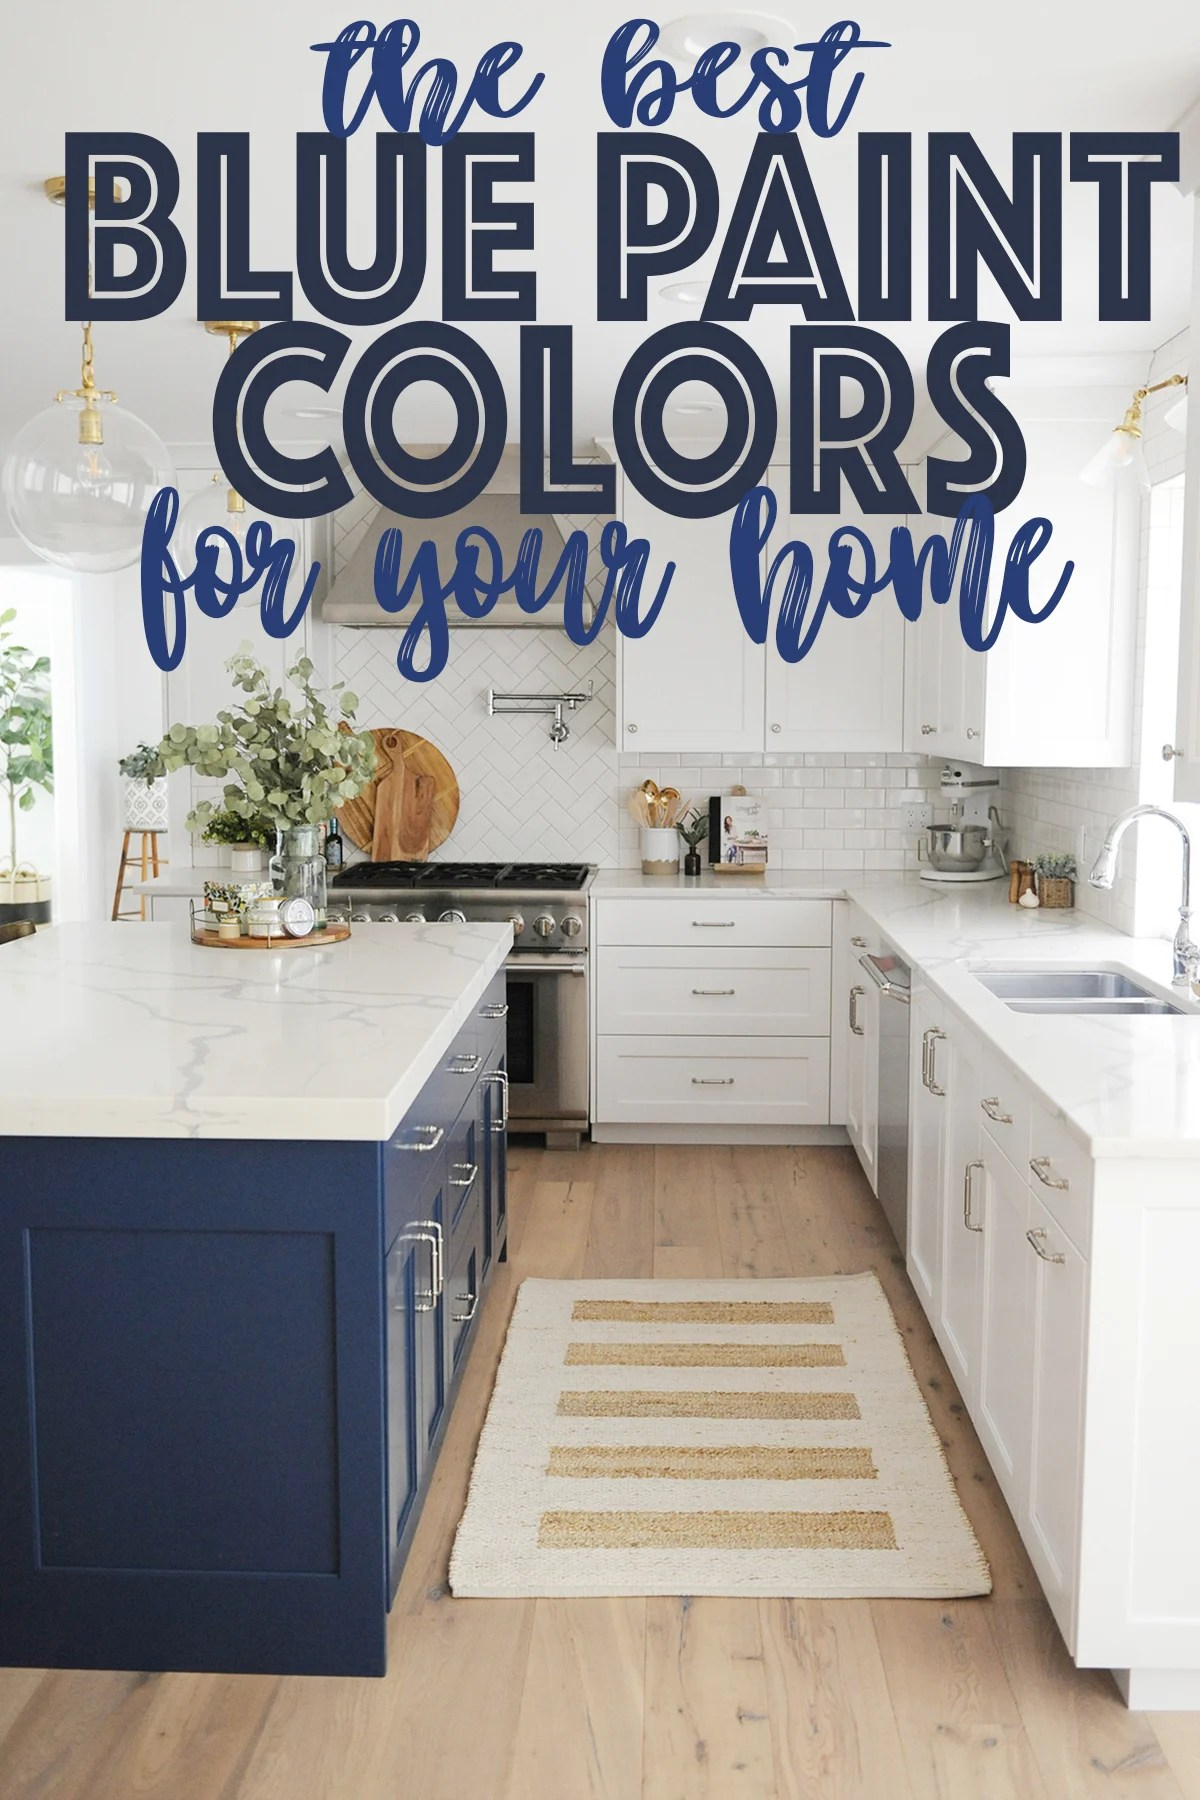 Designer's Favorite Blue Paint Colors for Your Home